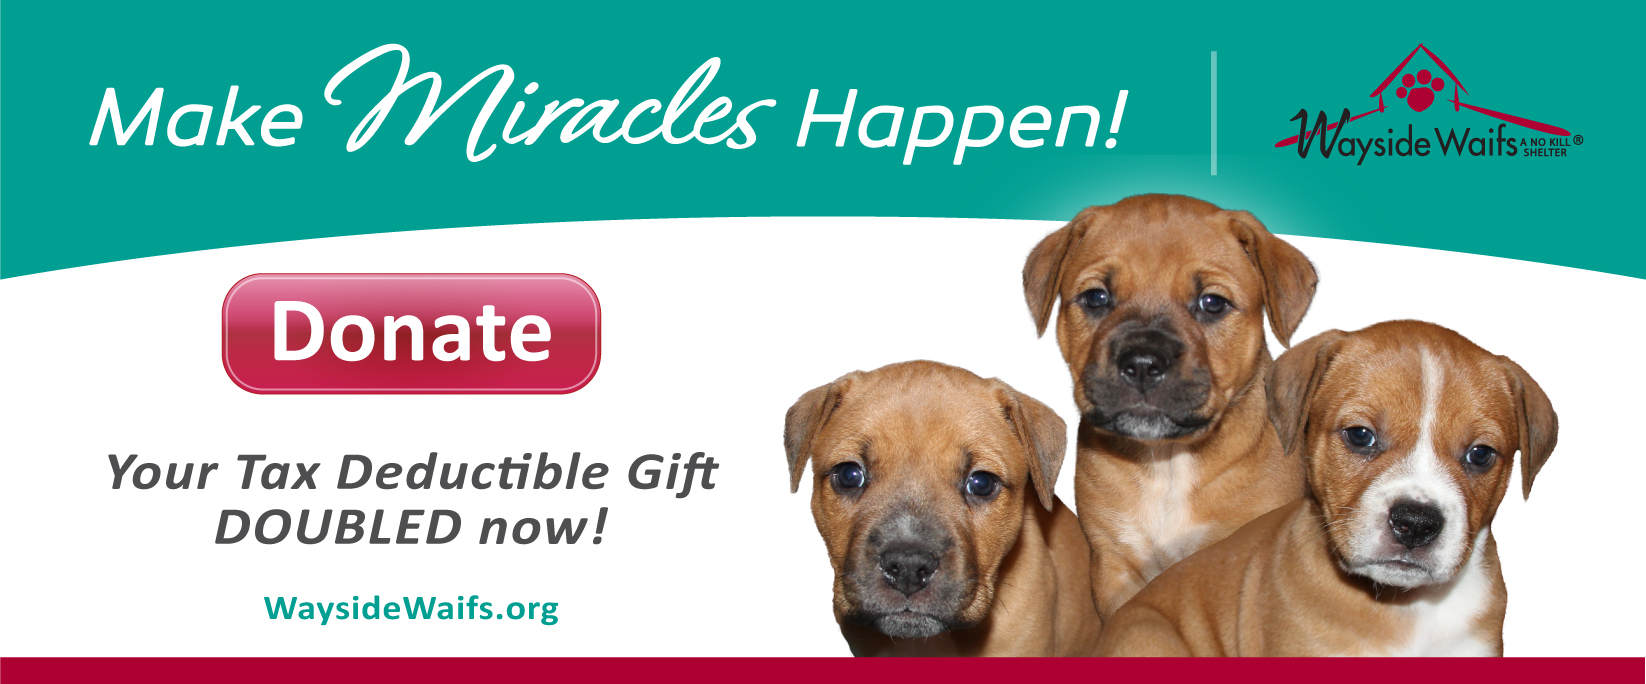 Donate now and your gift will be MATCHED!